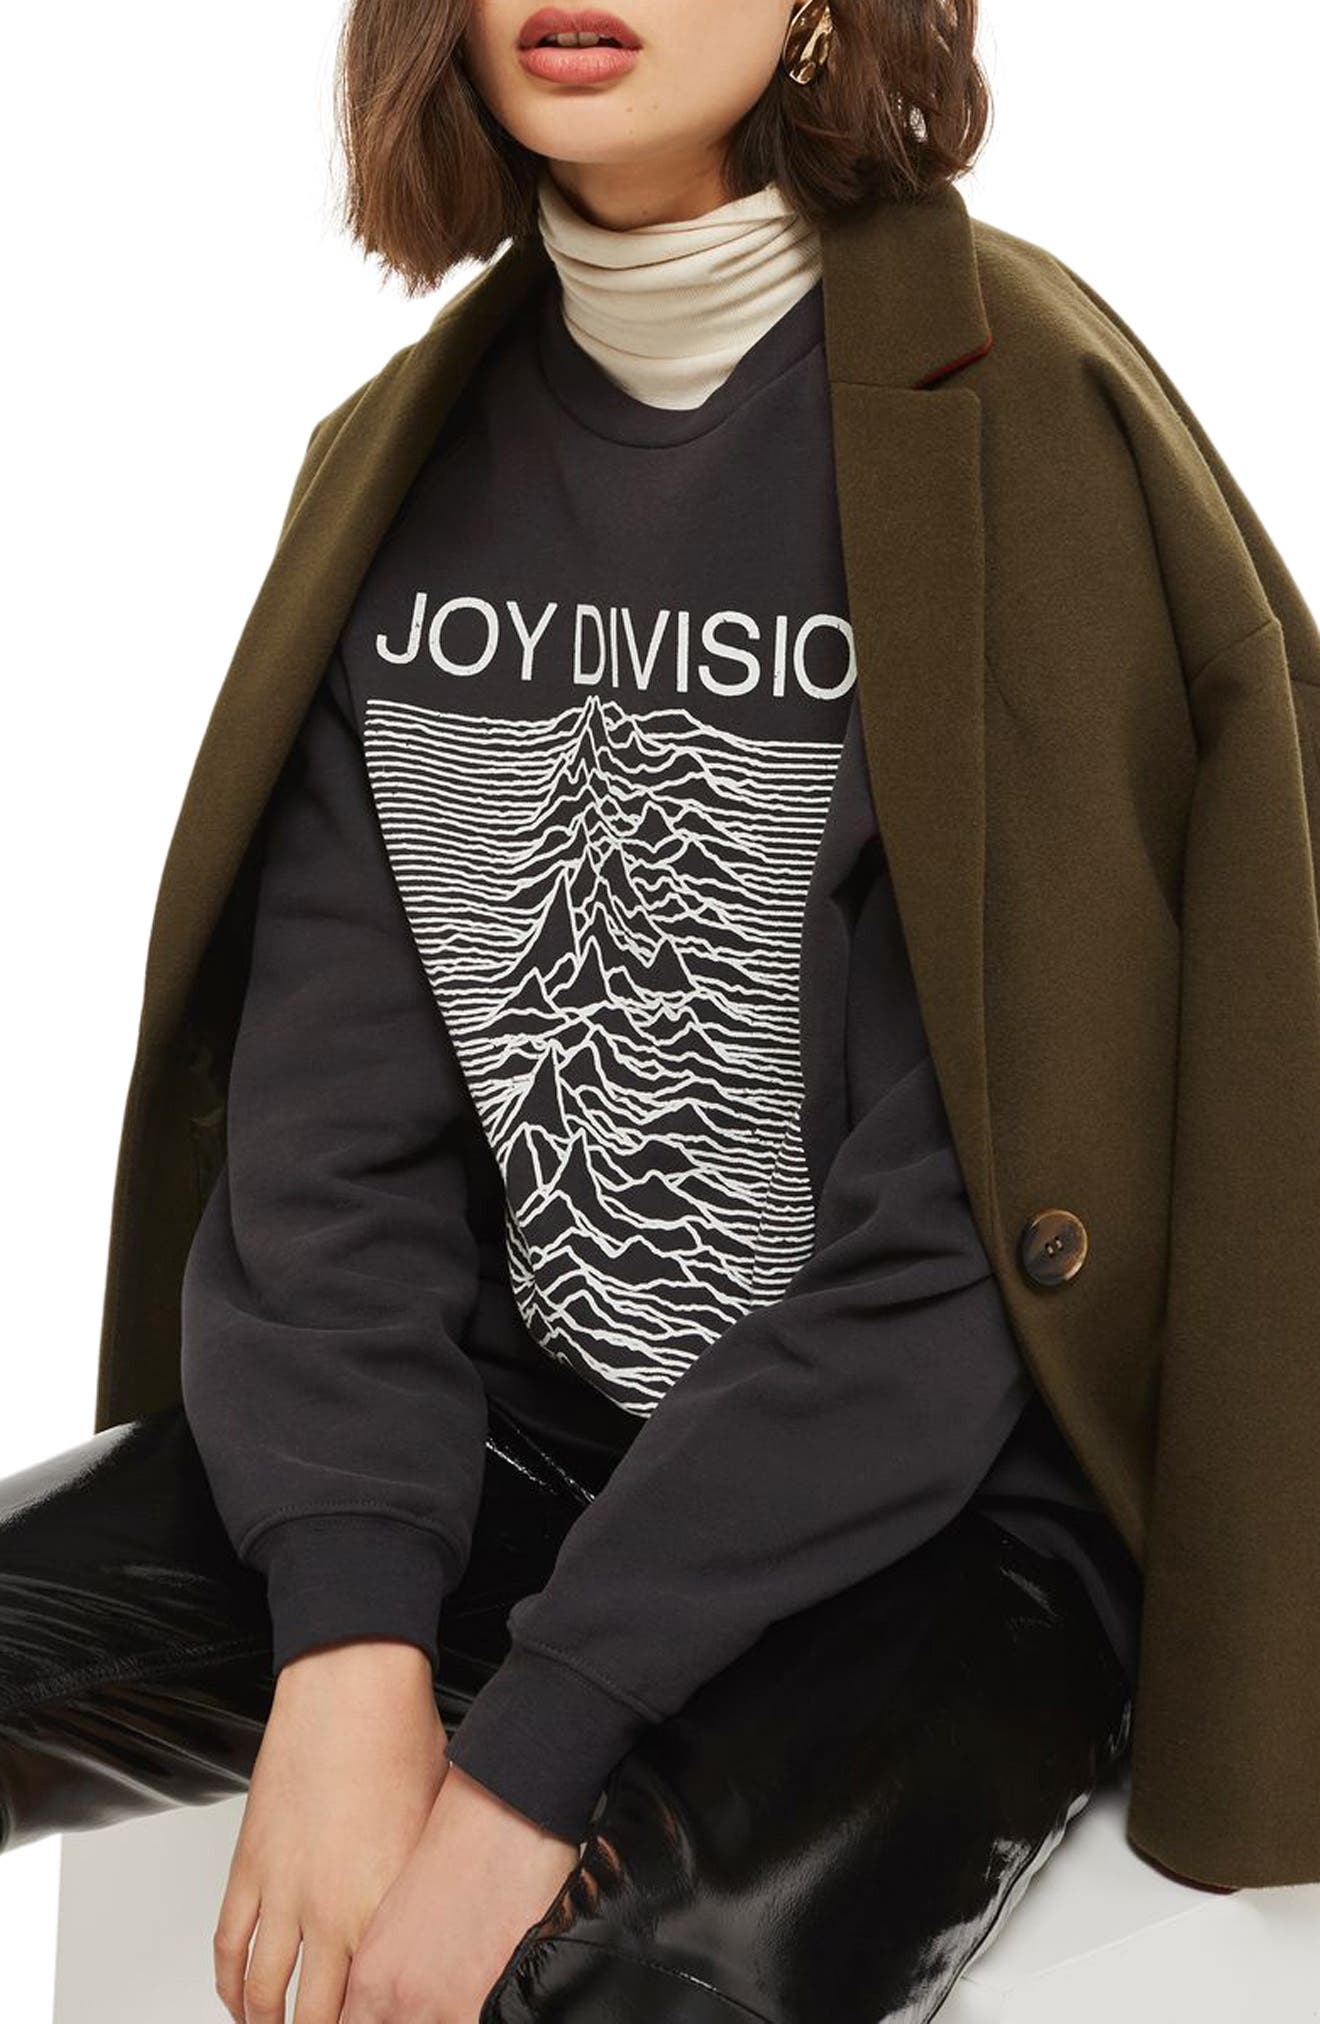 Topshop by And Finally Joy Division Sweatshirt